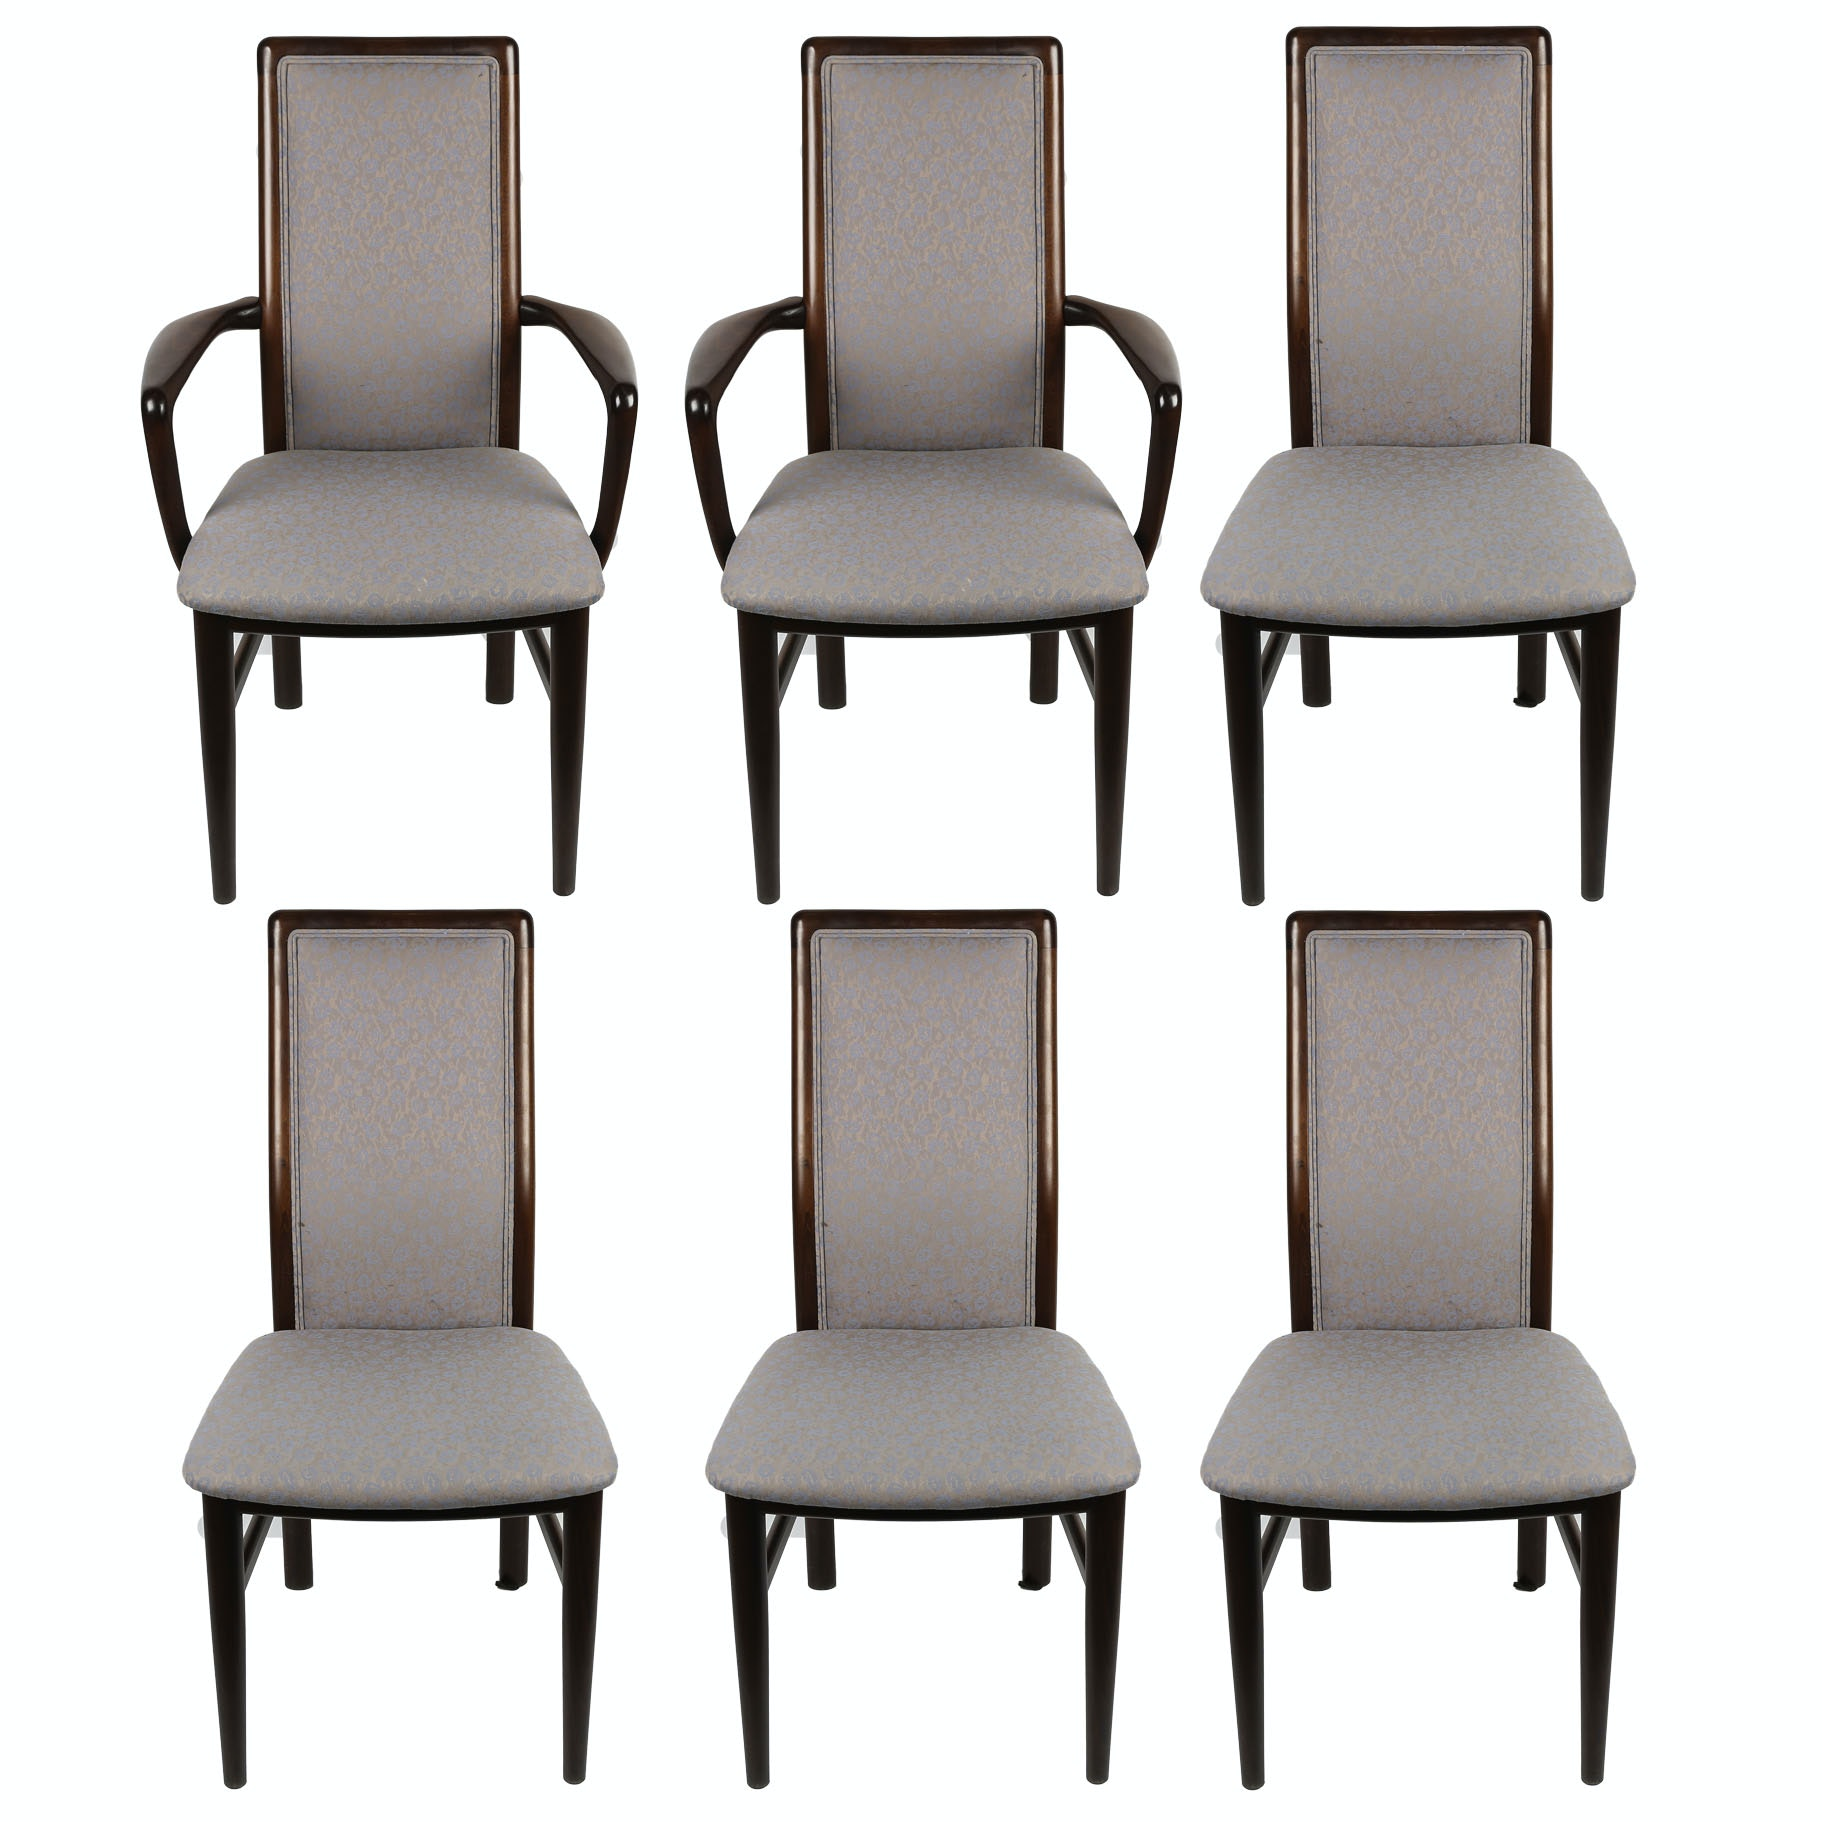 Set of Six Contemporary Upholstered Dining Chairs